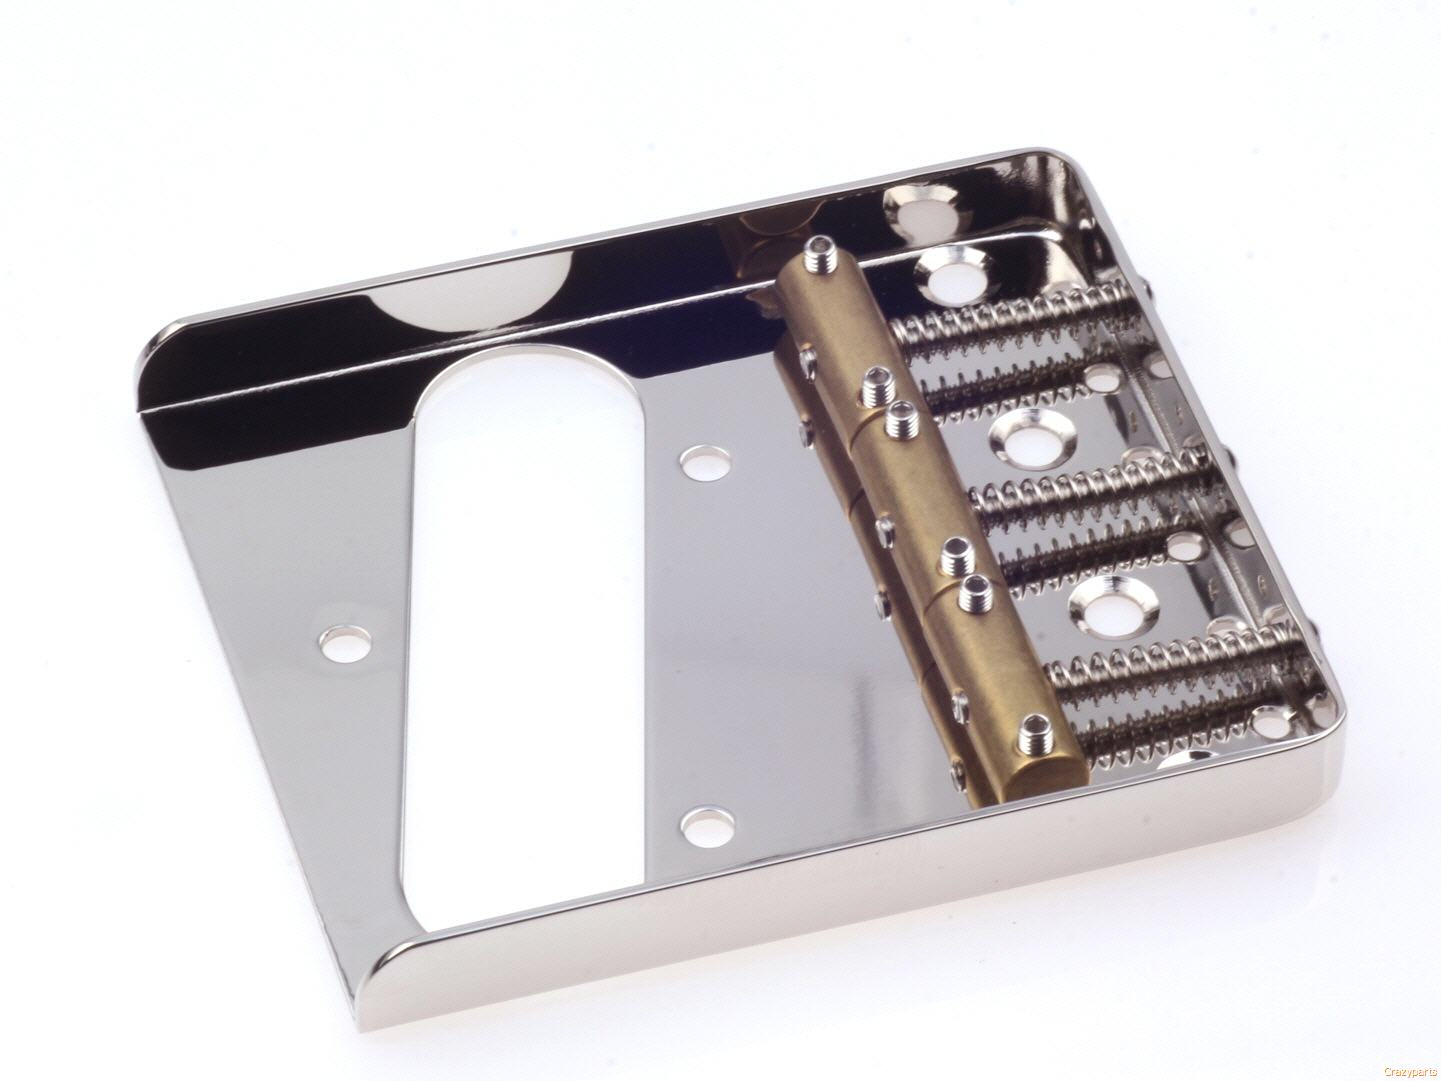 Nickel finish Vintage Telecaster bridge with 3 brass saddles